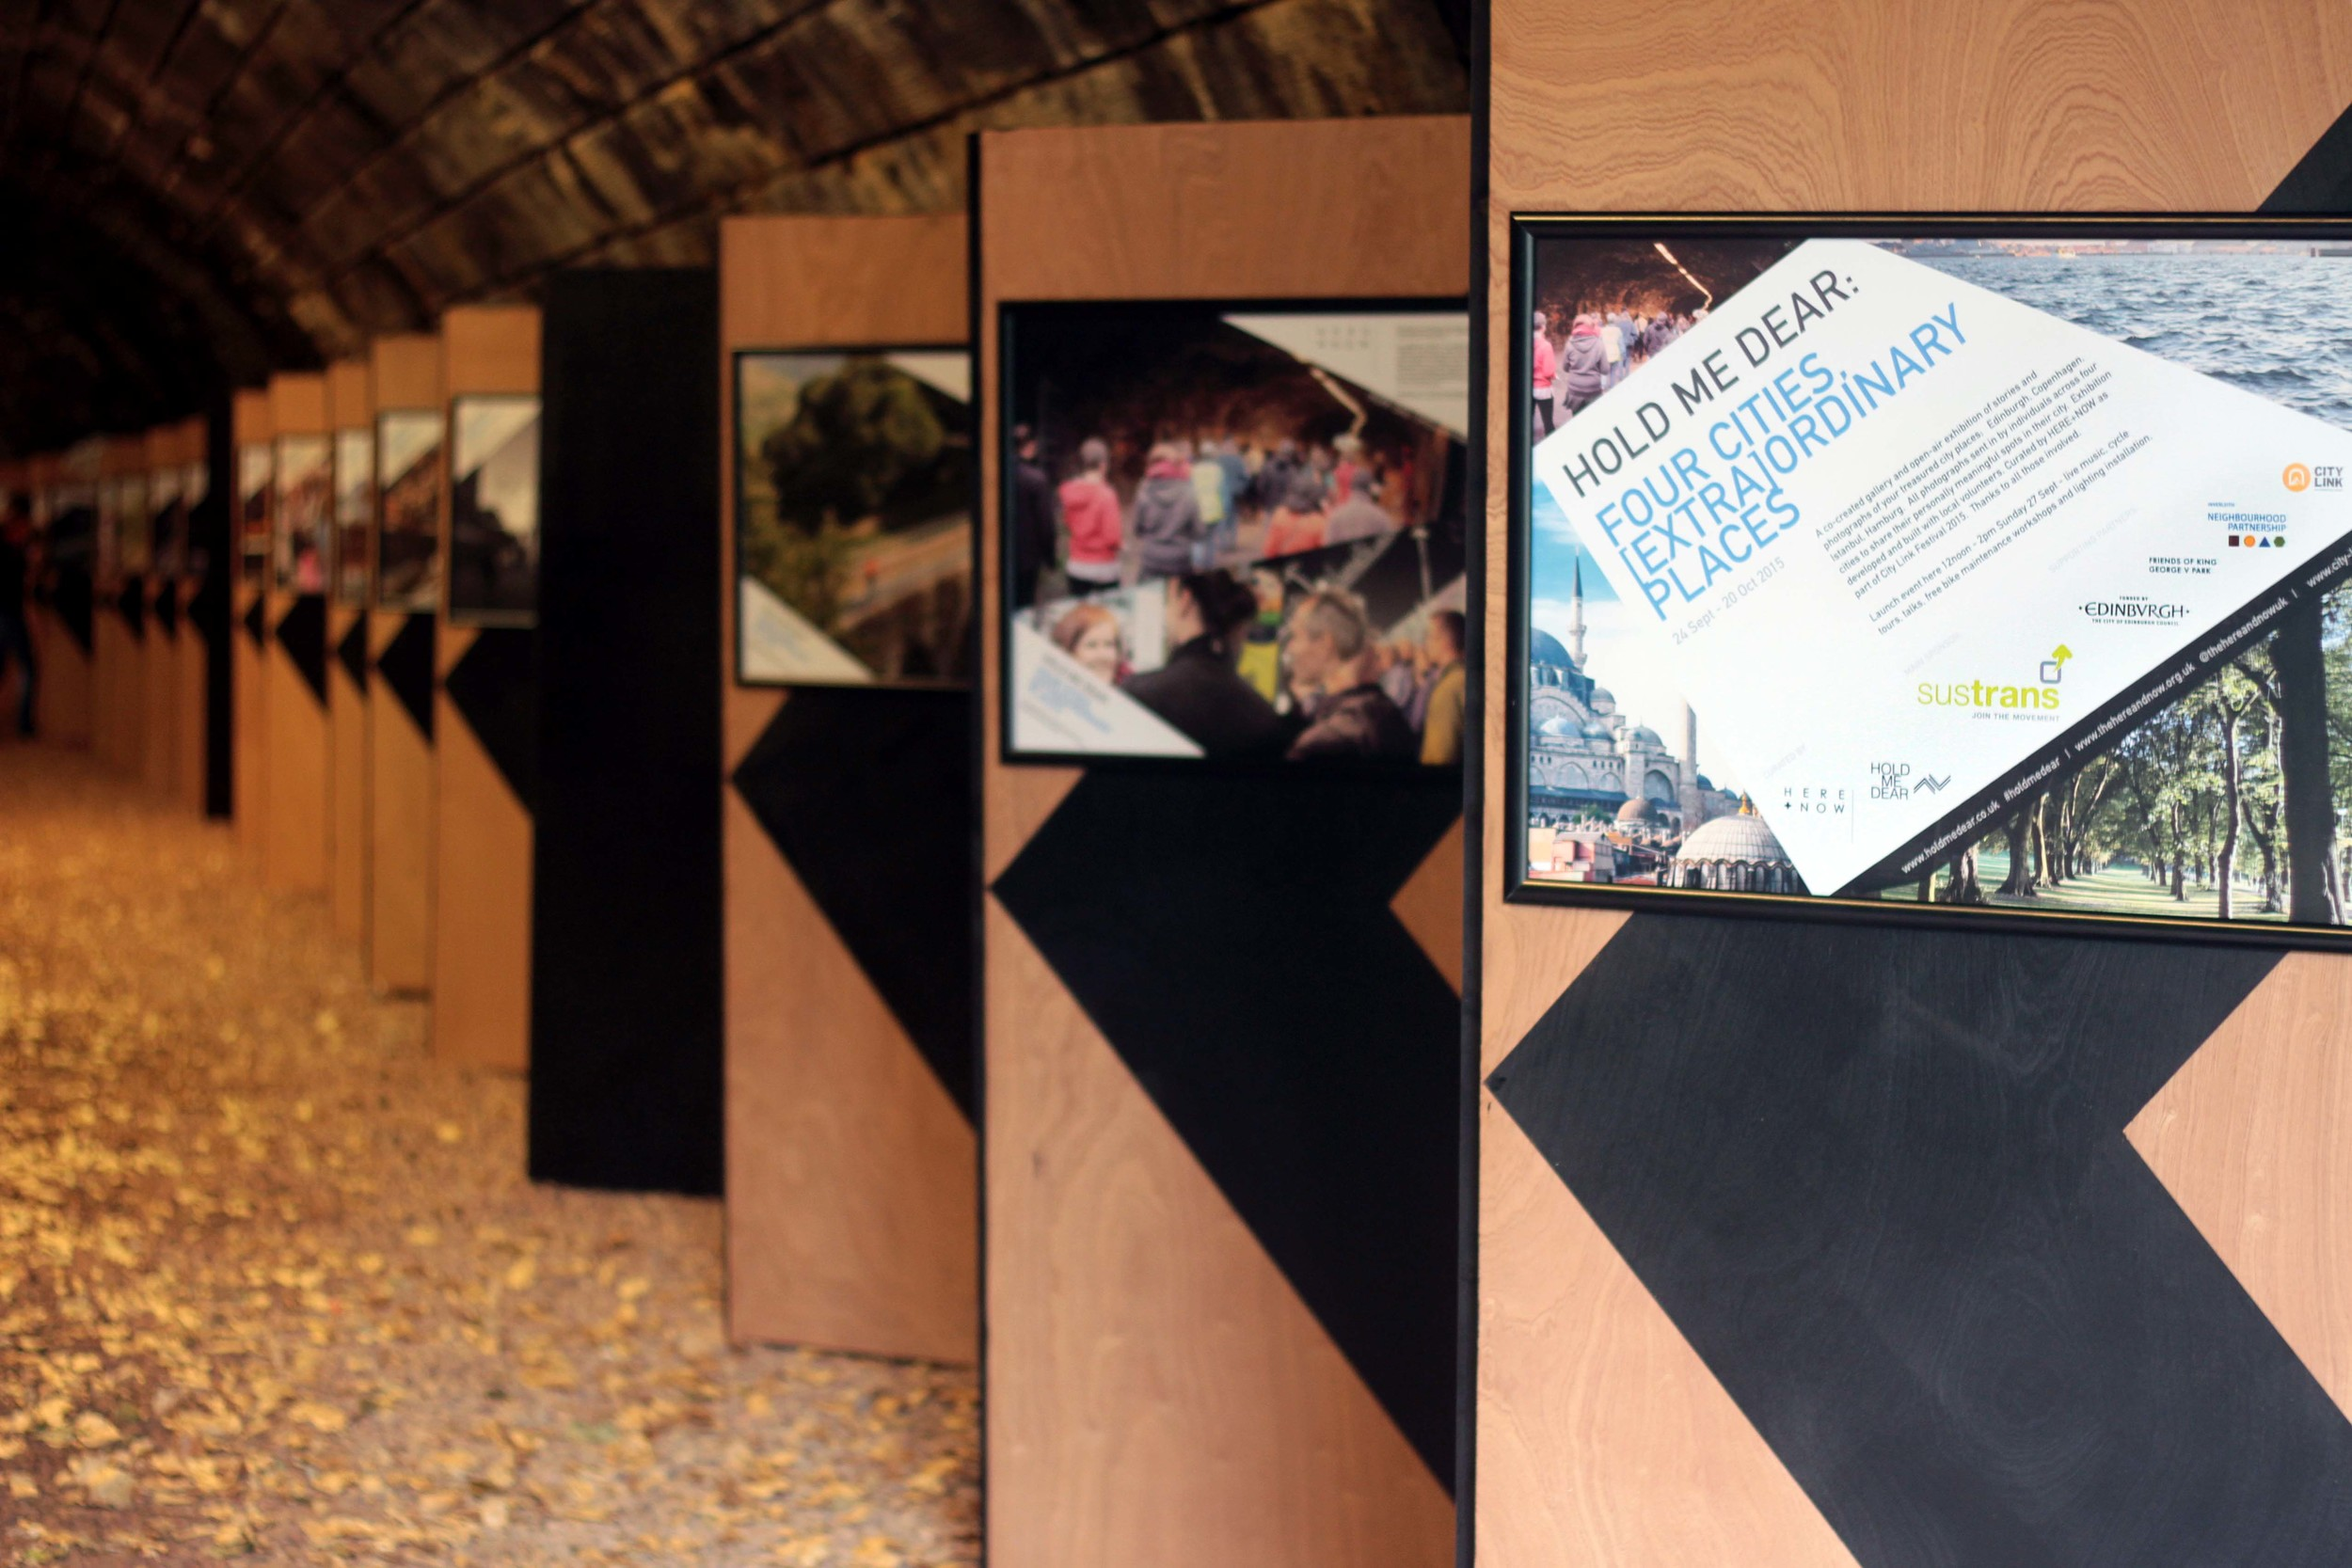 Hold Me Dear exhibition in Rodney St tunnel. Winner of the 2016 Scottish Design Awards for Regeneration. Find out more  here .